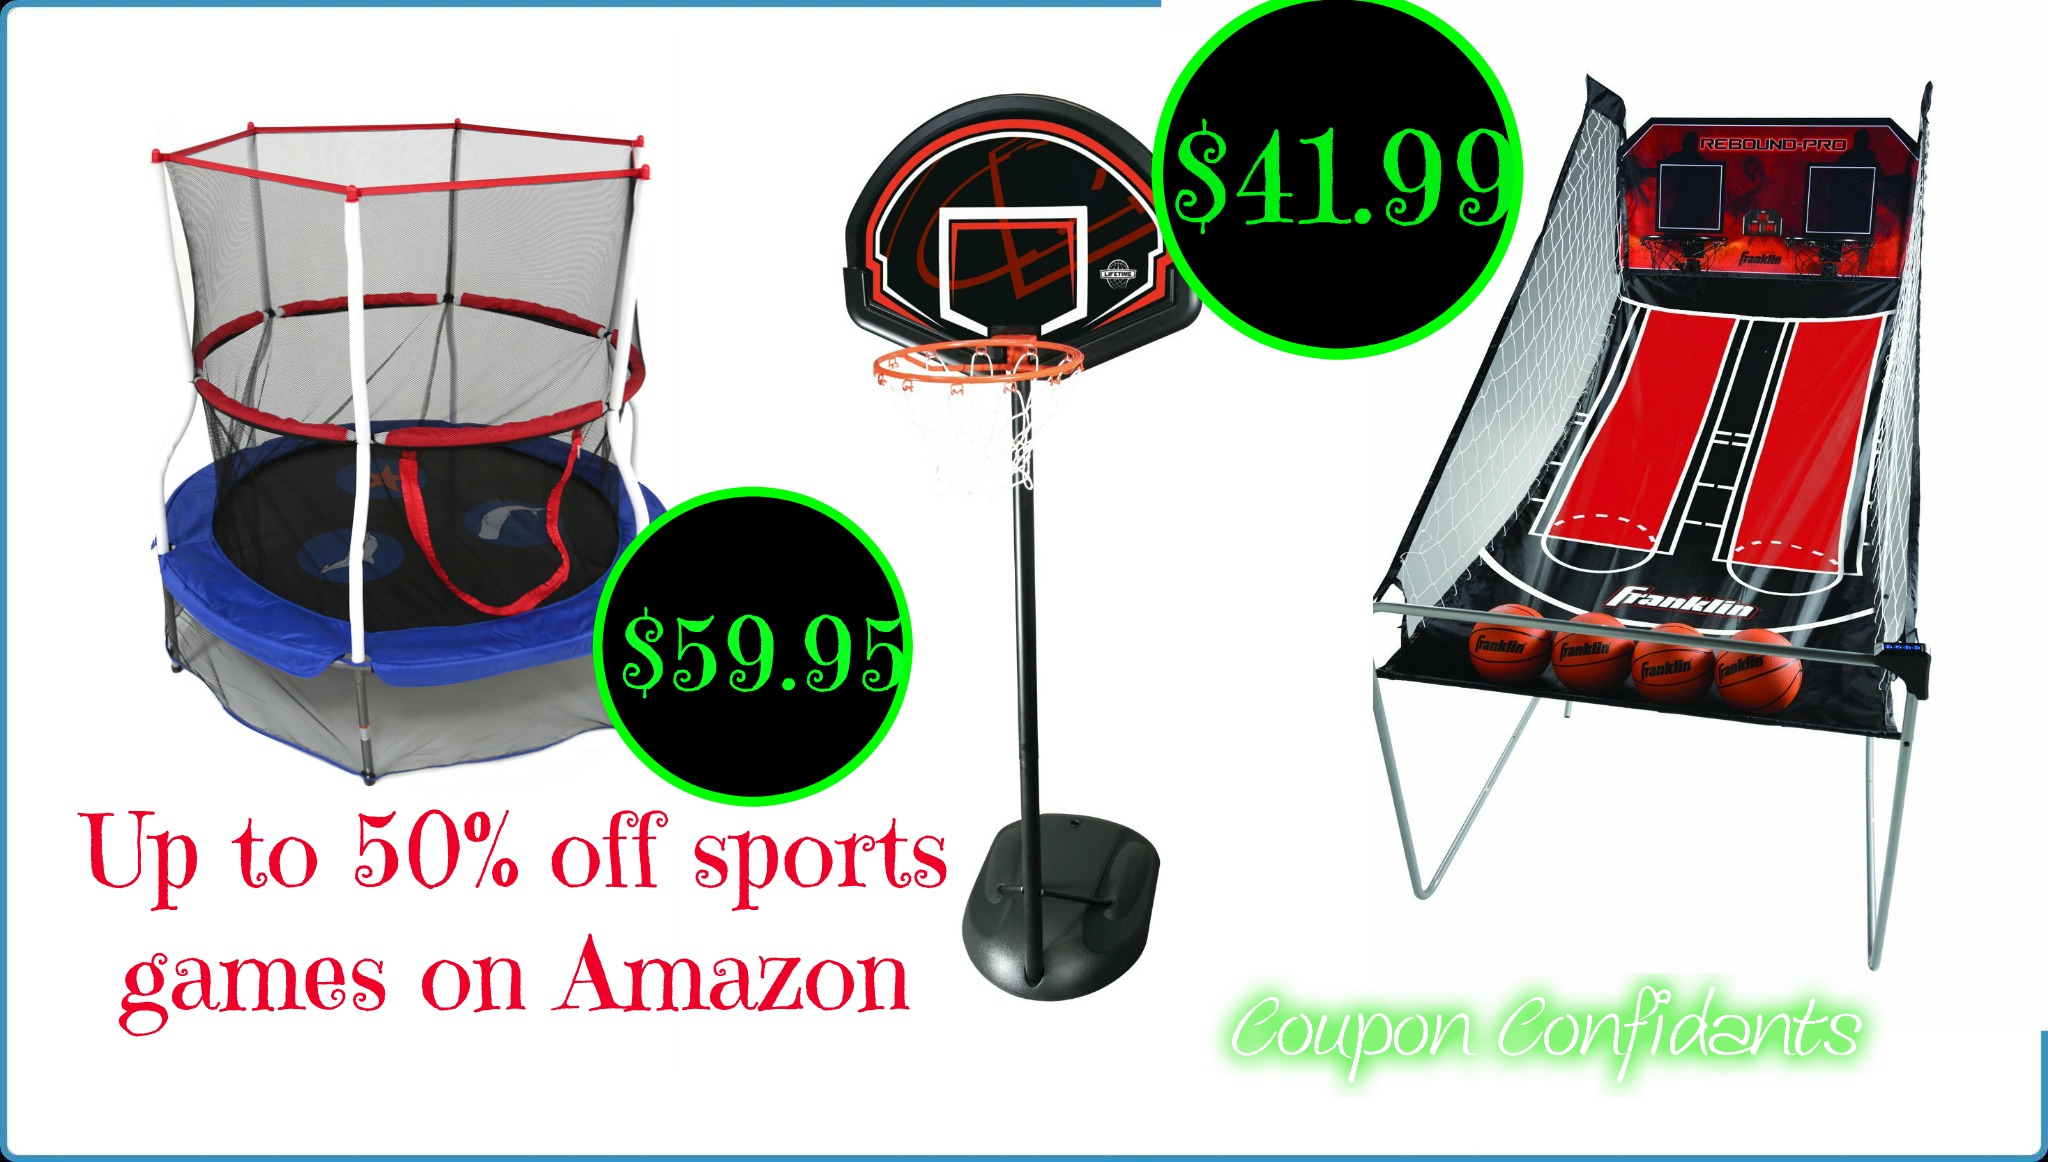 Another great Amazon Deal of the Day, up to 50% off sports products